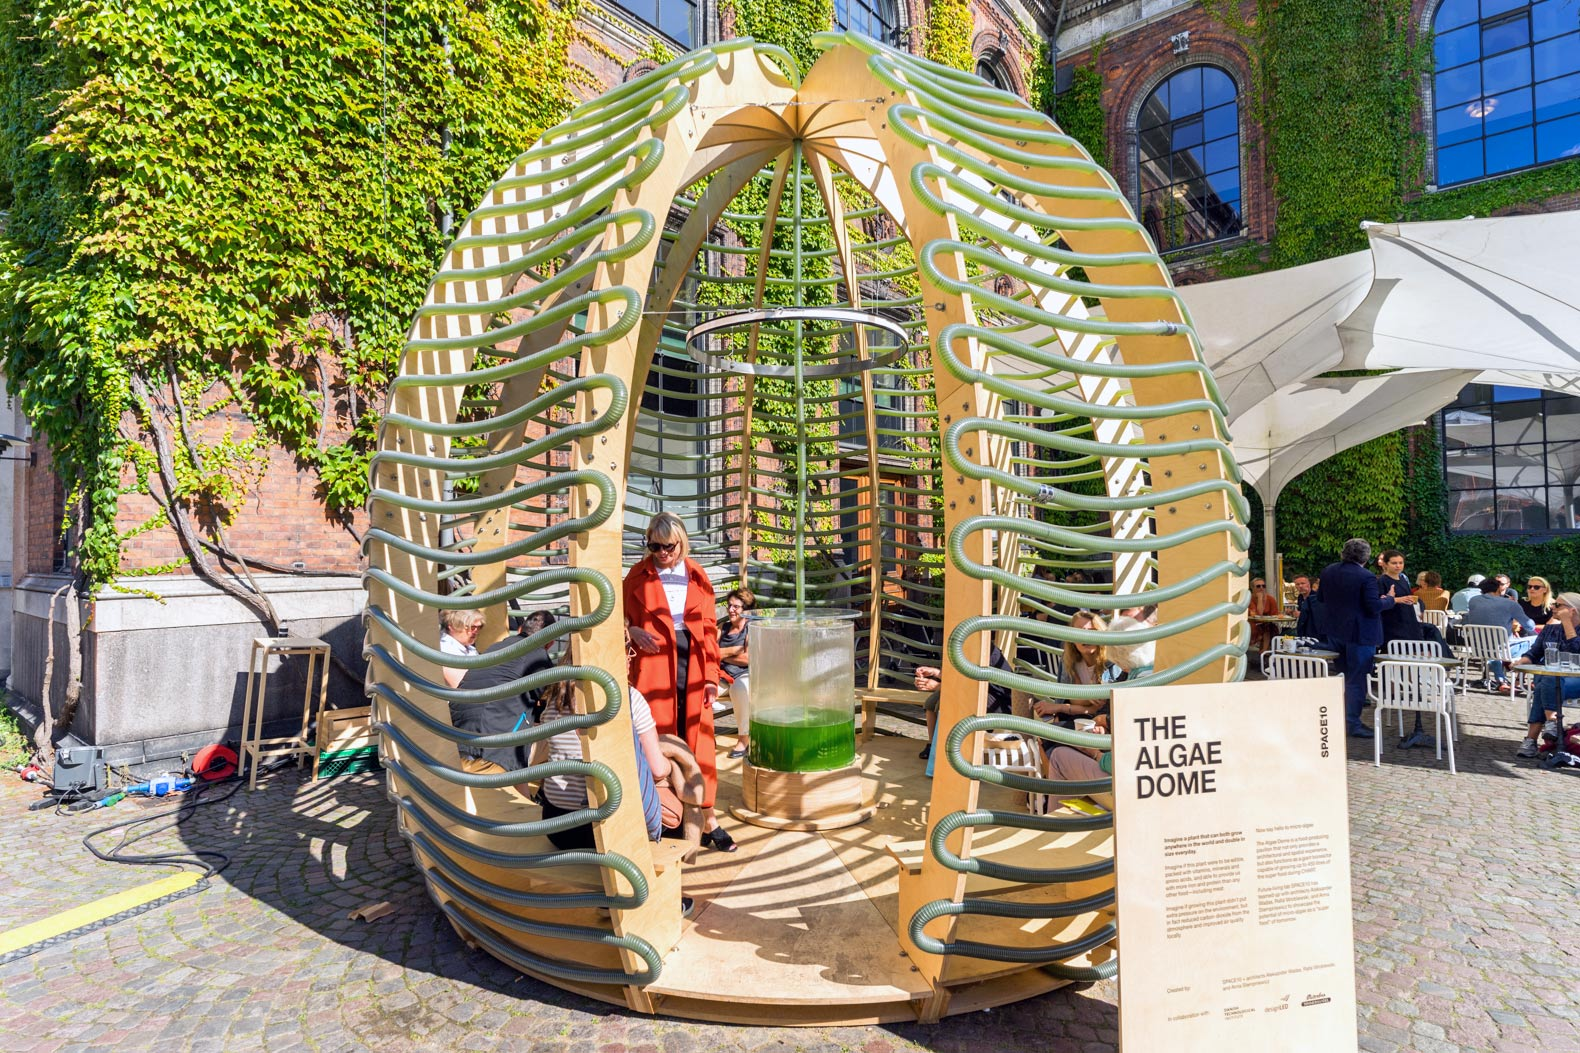 Incredible Algae Dome absorbs sun and CO2 to produce superfood and oxygen